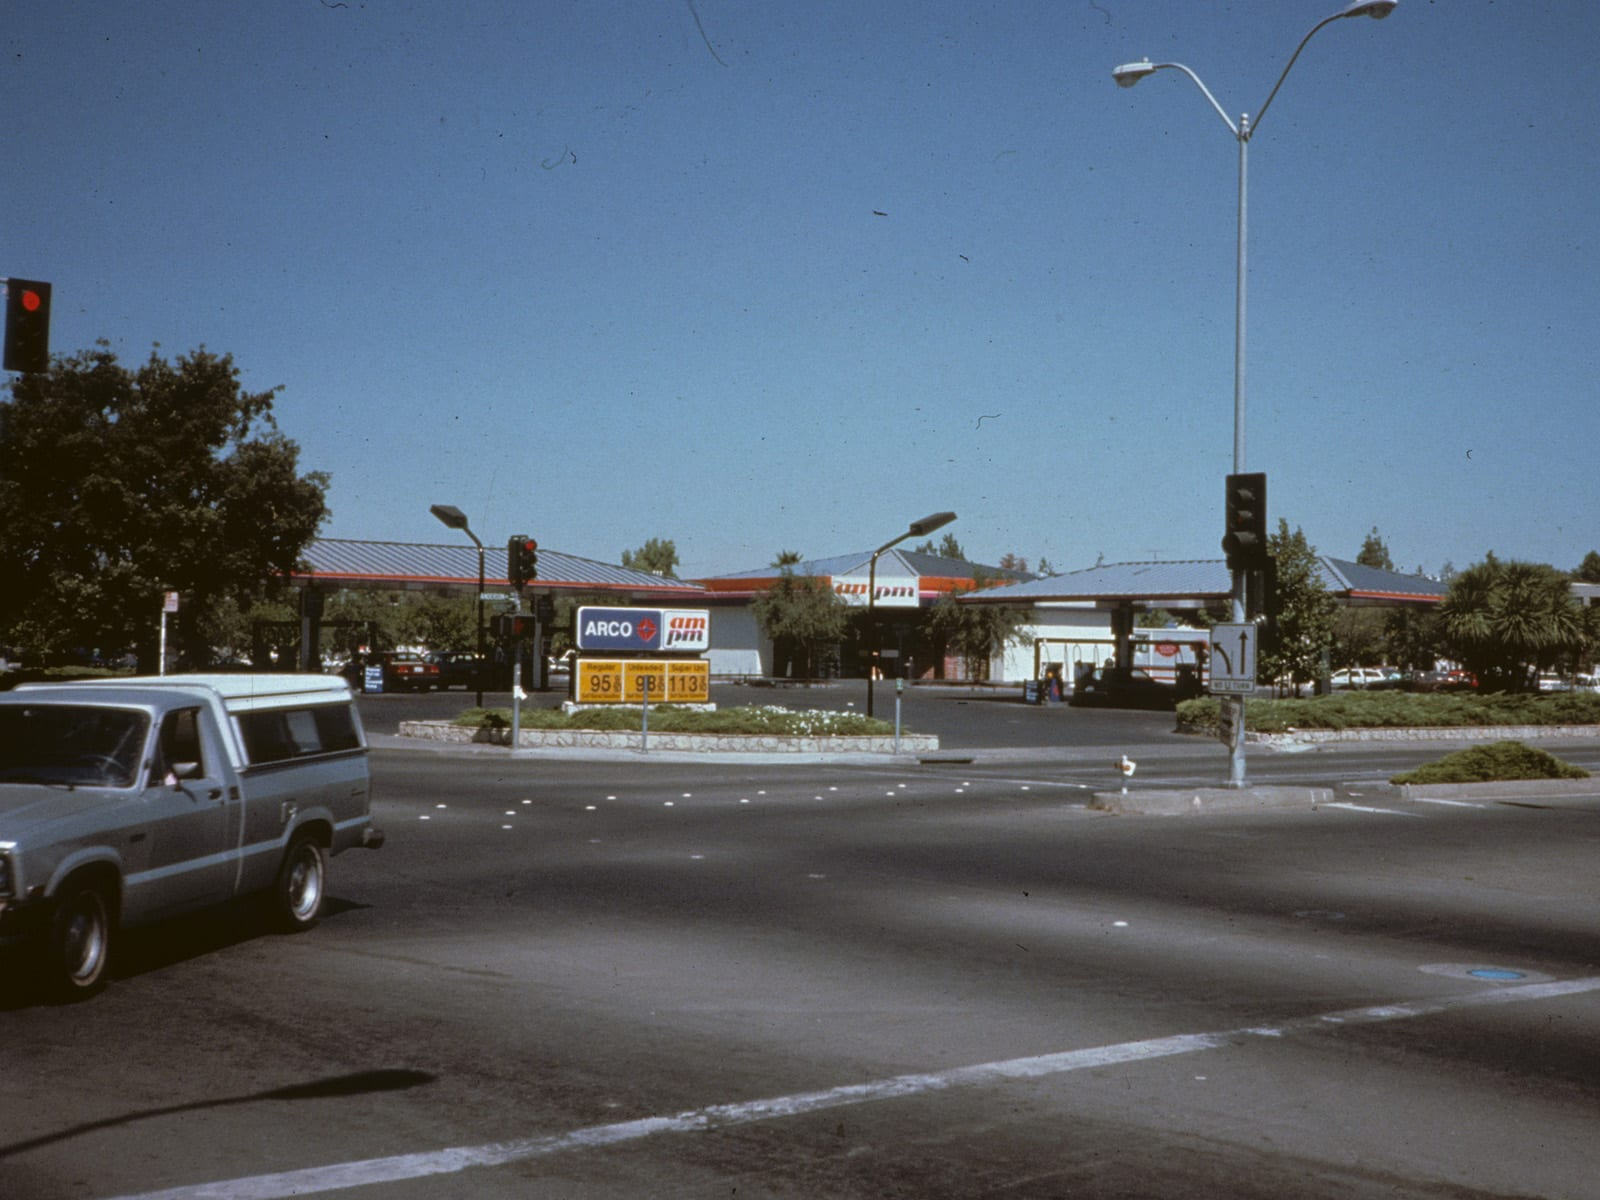 The corner of Russell Boulevard and Anderson Road, circa 1980s